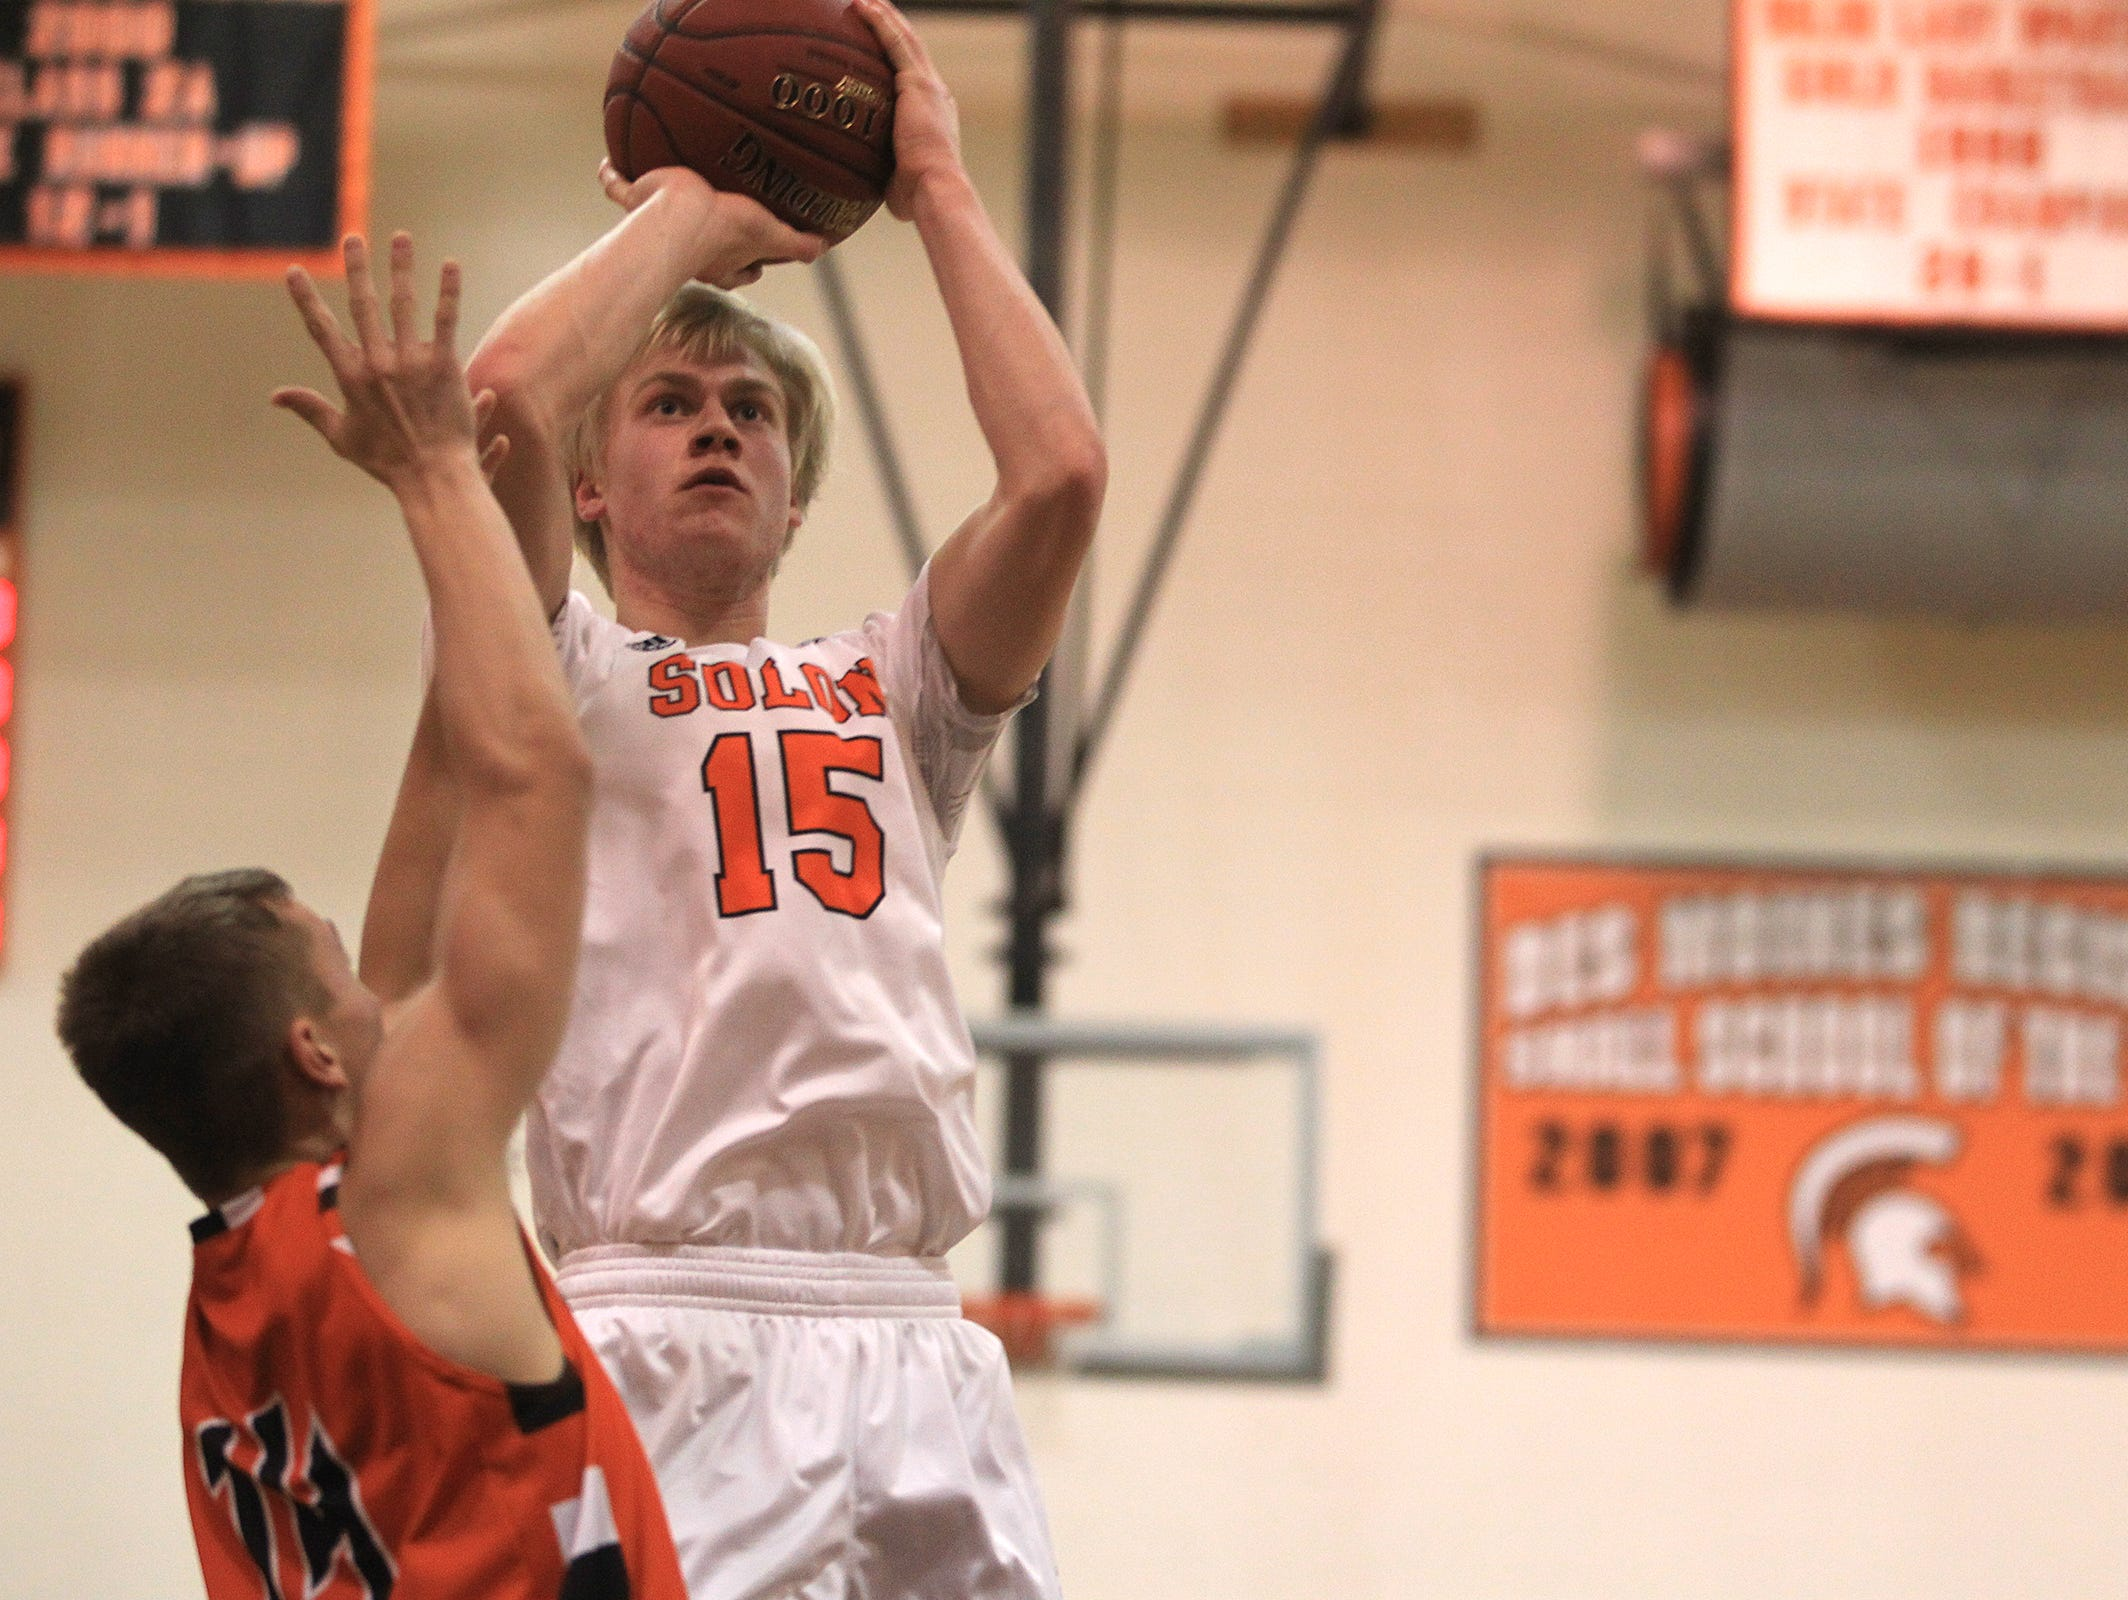 Solon's Streeter McIlravy goes up for a shot during the Spartans' game against West Delaware on Friday, Dec. 19, 2014.